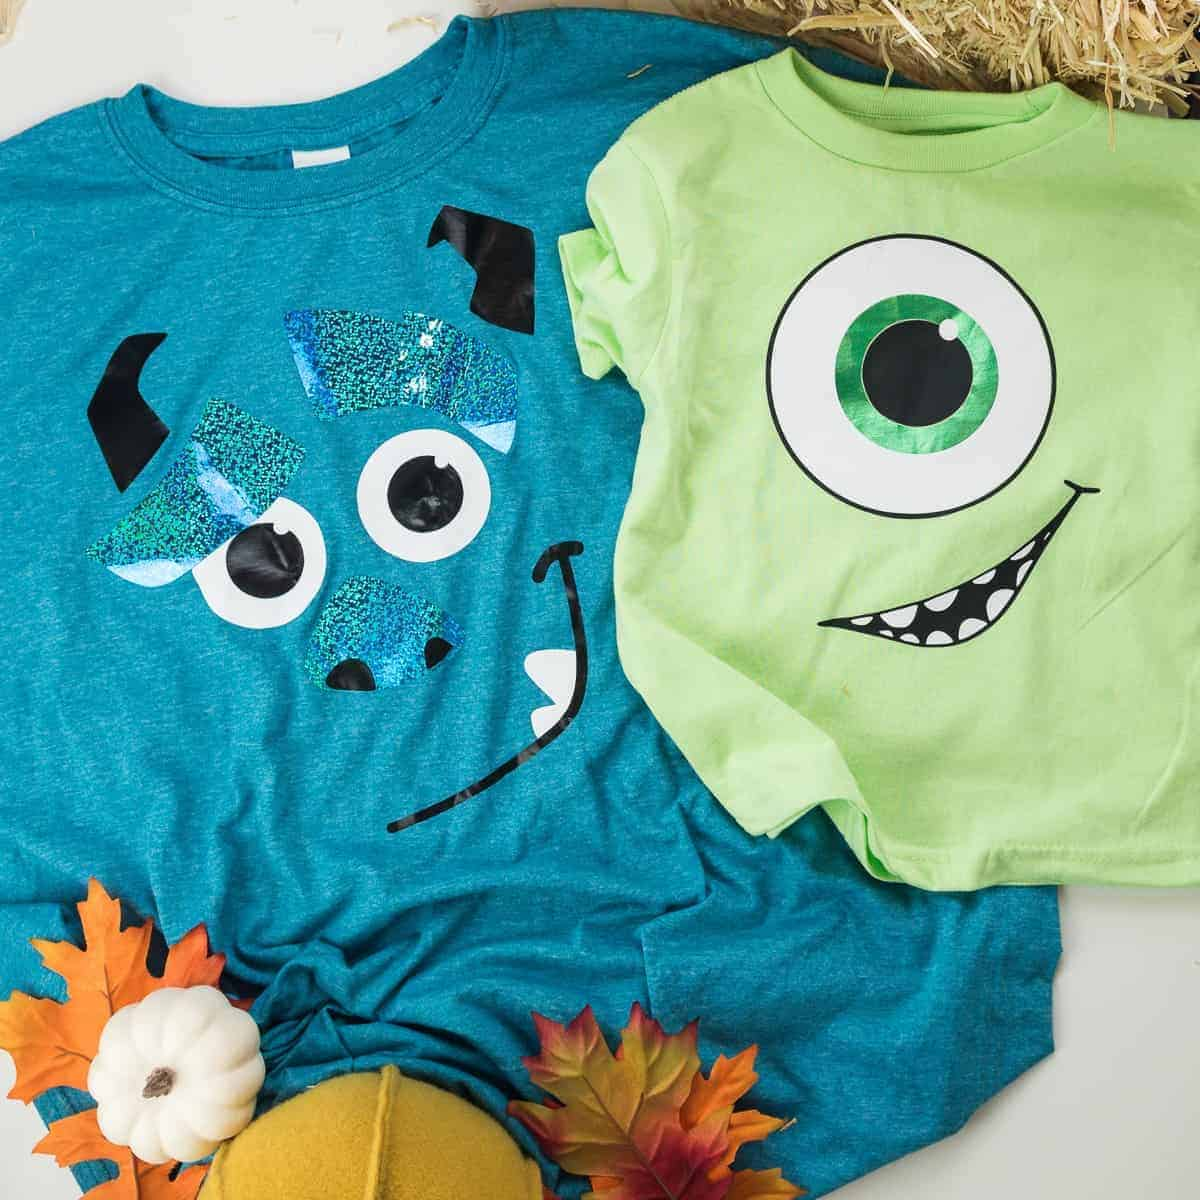 DIY Monsters Inc Family Costumes with Vinyl